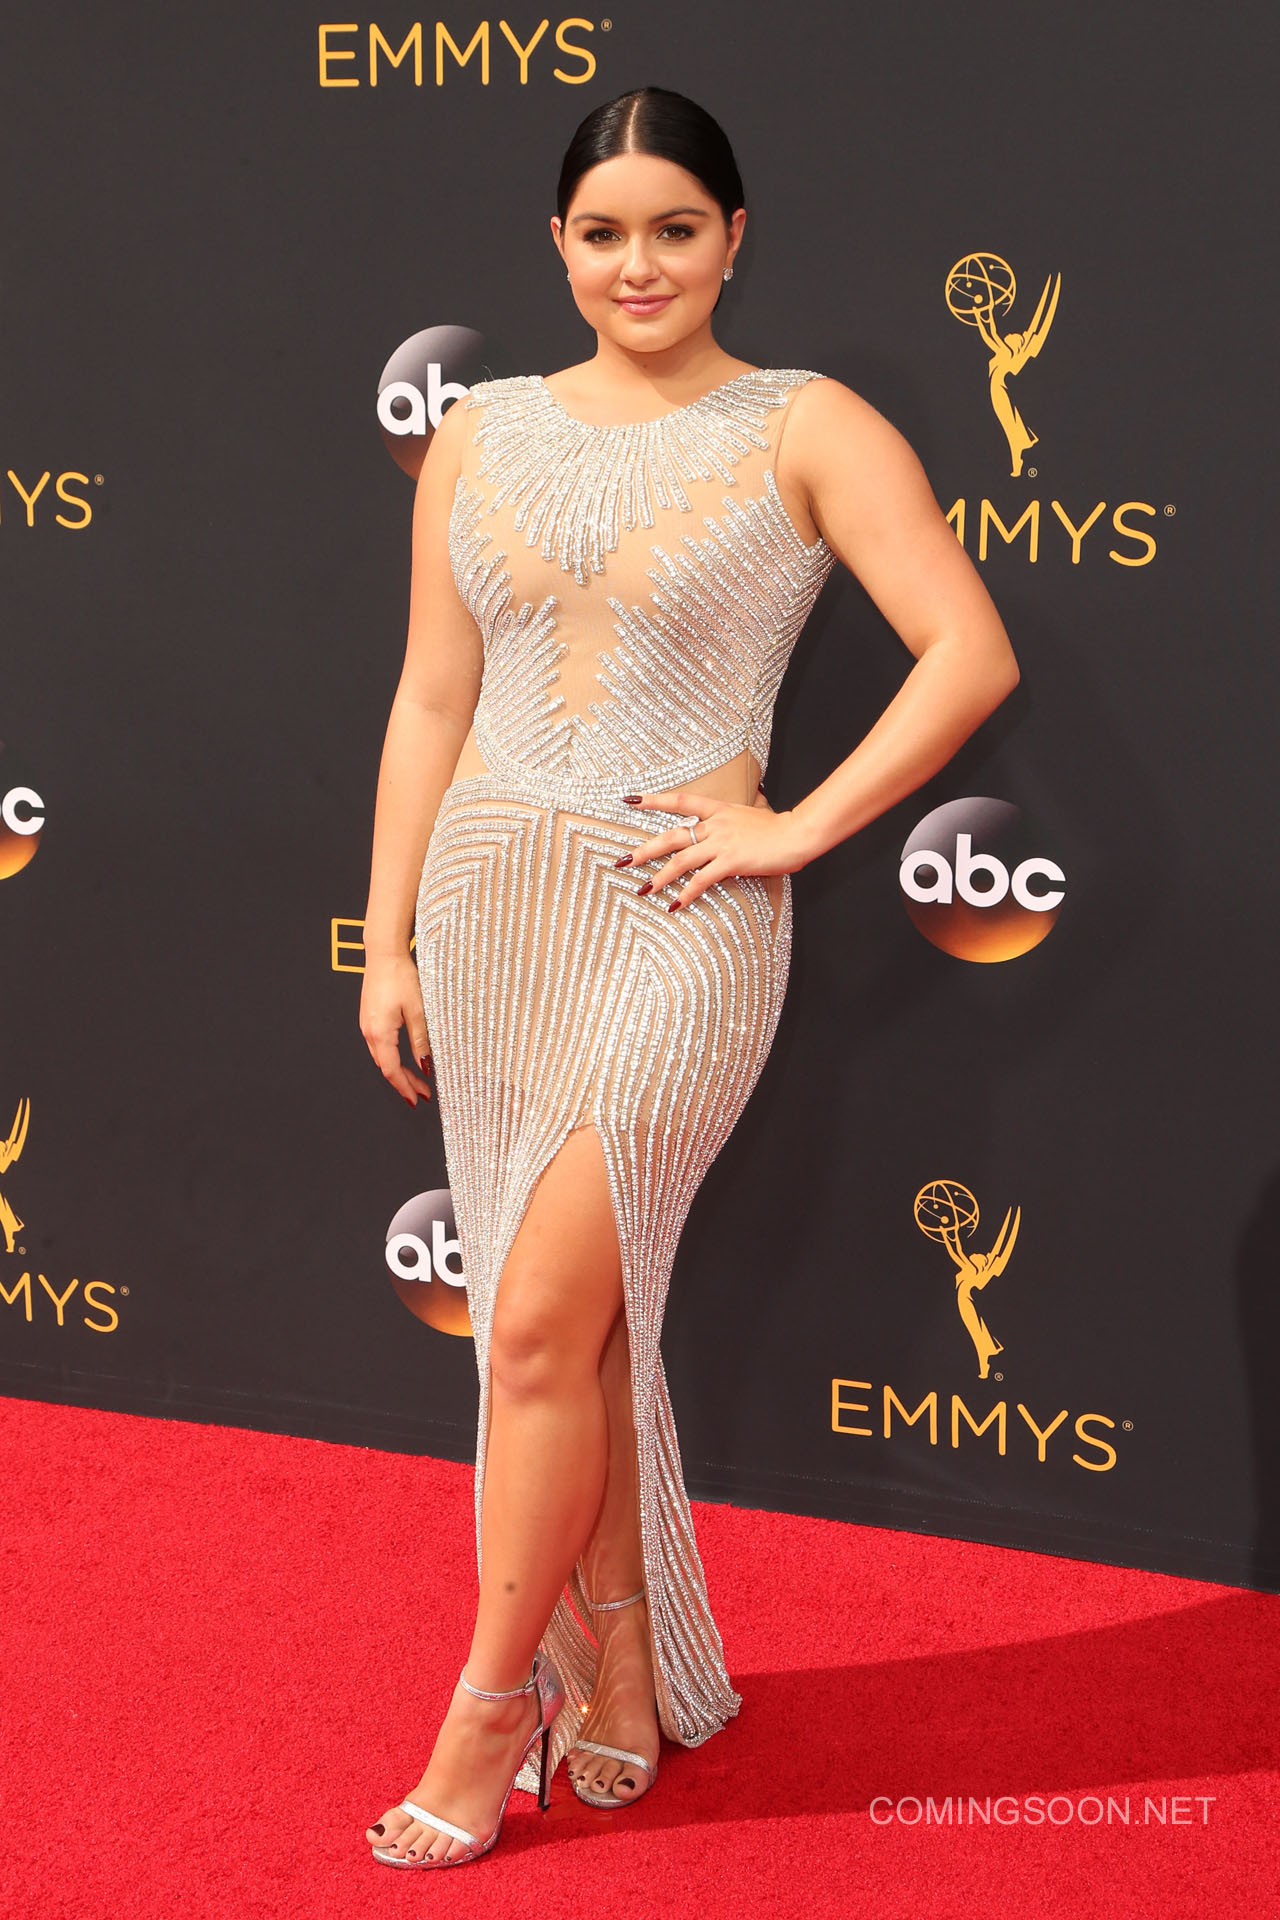 The 68th Annual Emmy Awards Winners Comingsoon Net